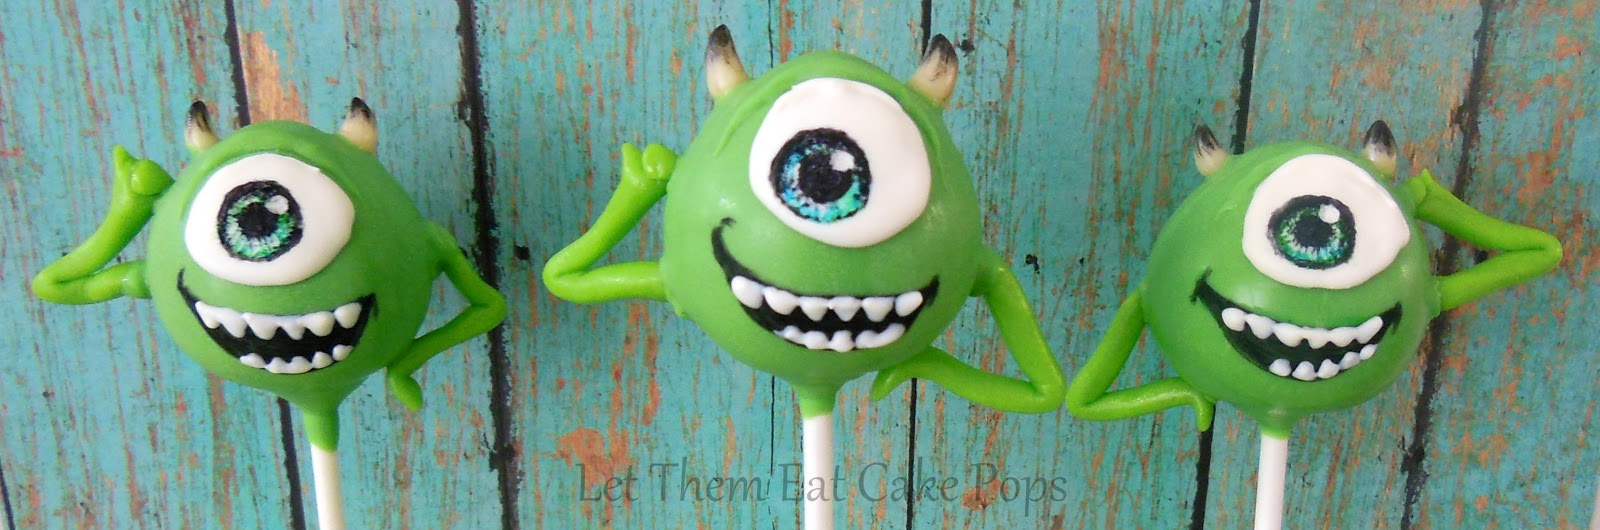 Mike Wasowski Cake Pops For Monsters Inc By Let Them Eat